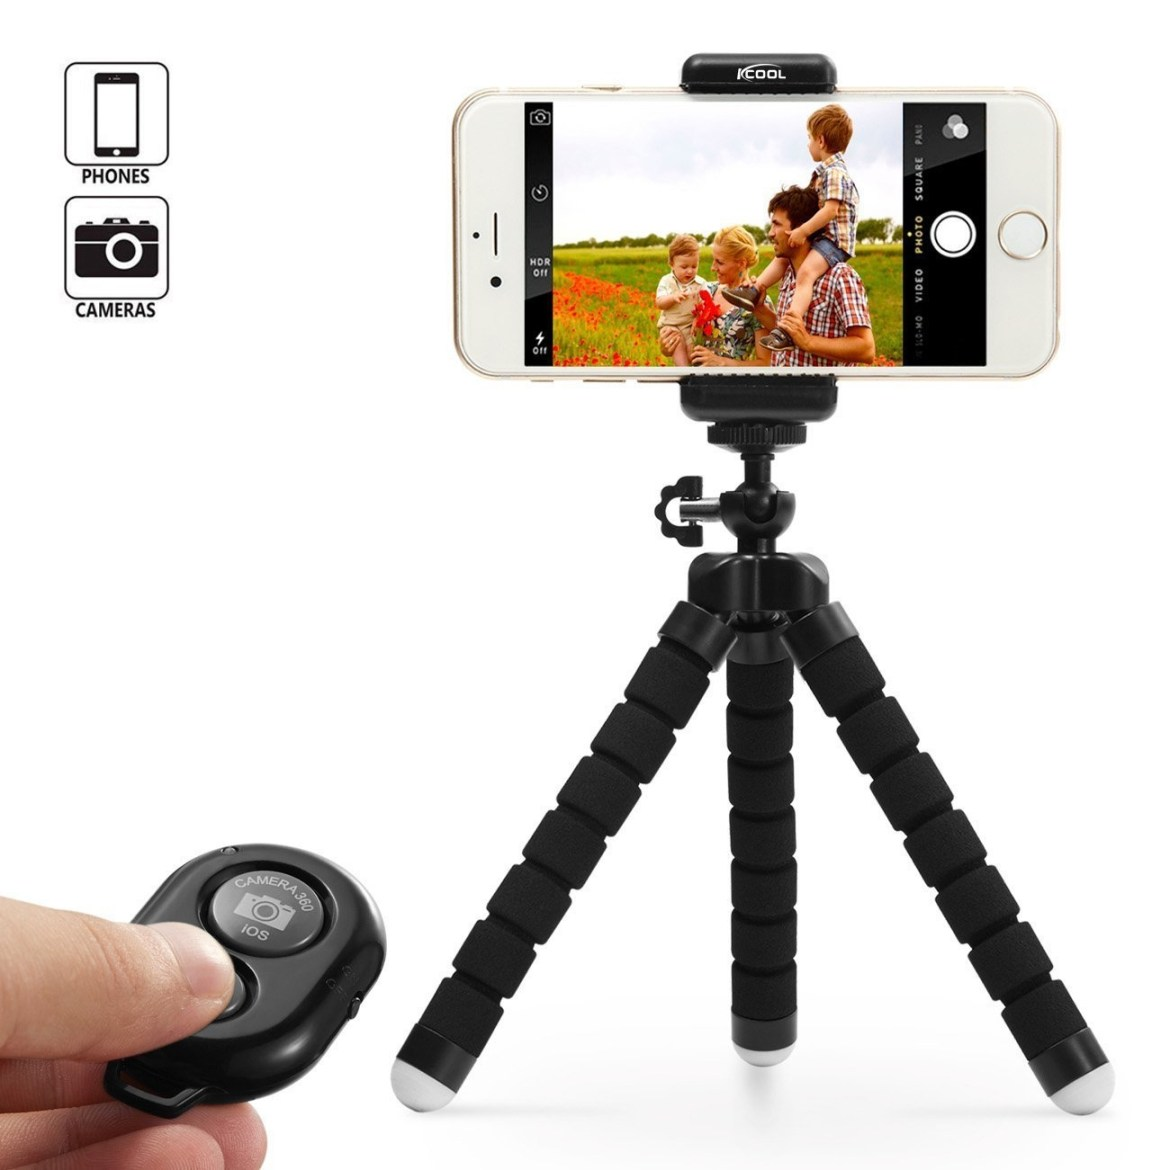 bc6876f44d7bc4f4b528dbffd658d65c Octopus Tripod Stand Holder Universal Clip & Remote For Smartphones & Camera   Black